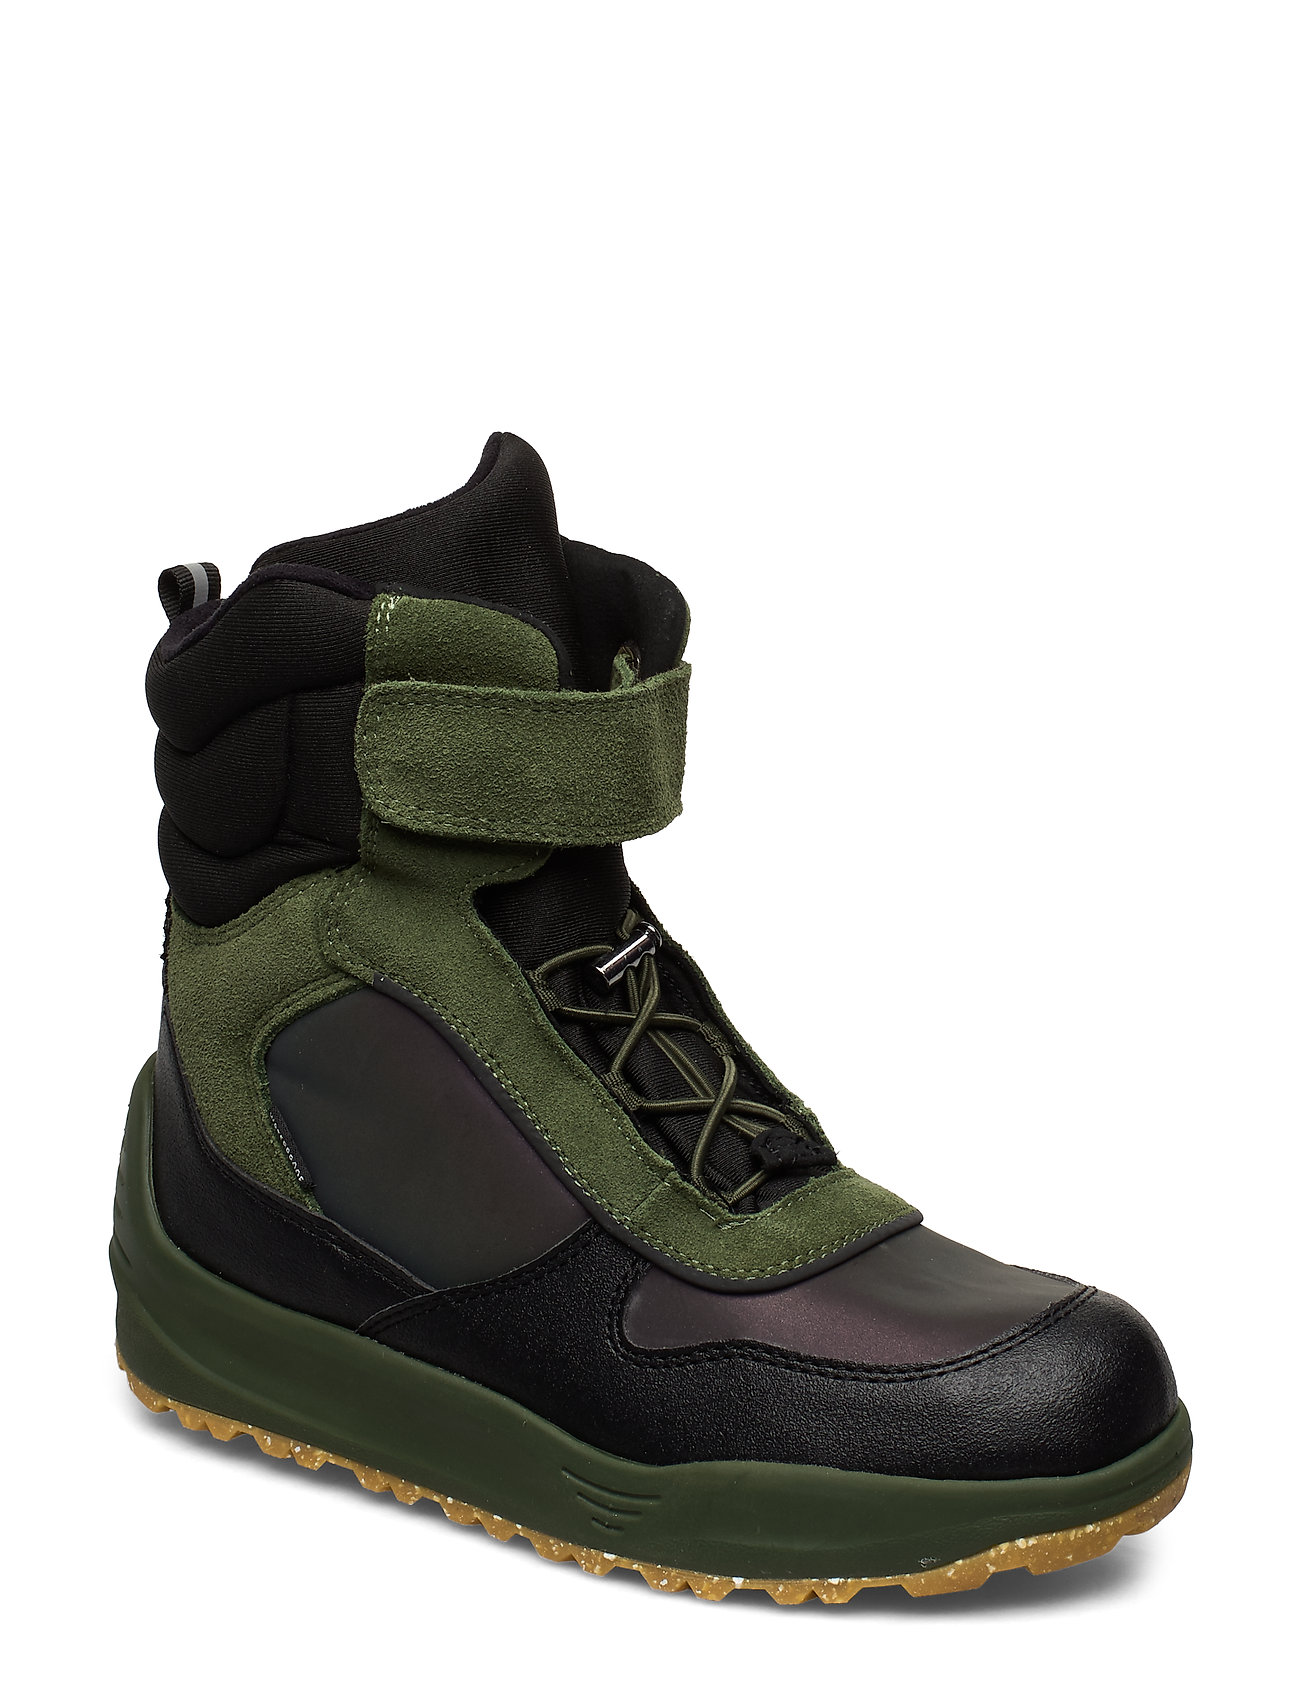 Image of Alex Midcut Boot Teen Shoes Boots Ankle Boots Ankle Boots Flat Heel Grøn Woden (3271517325)